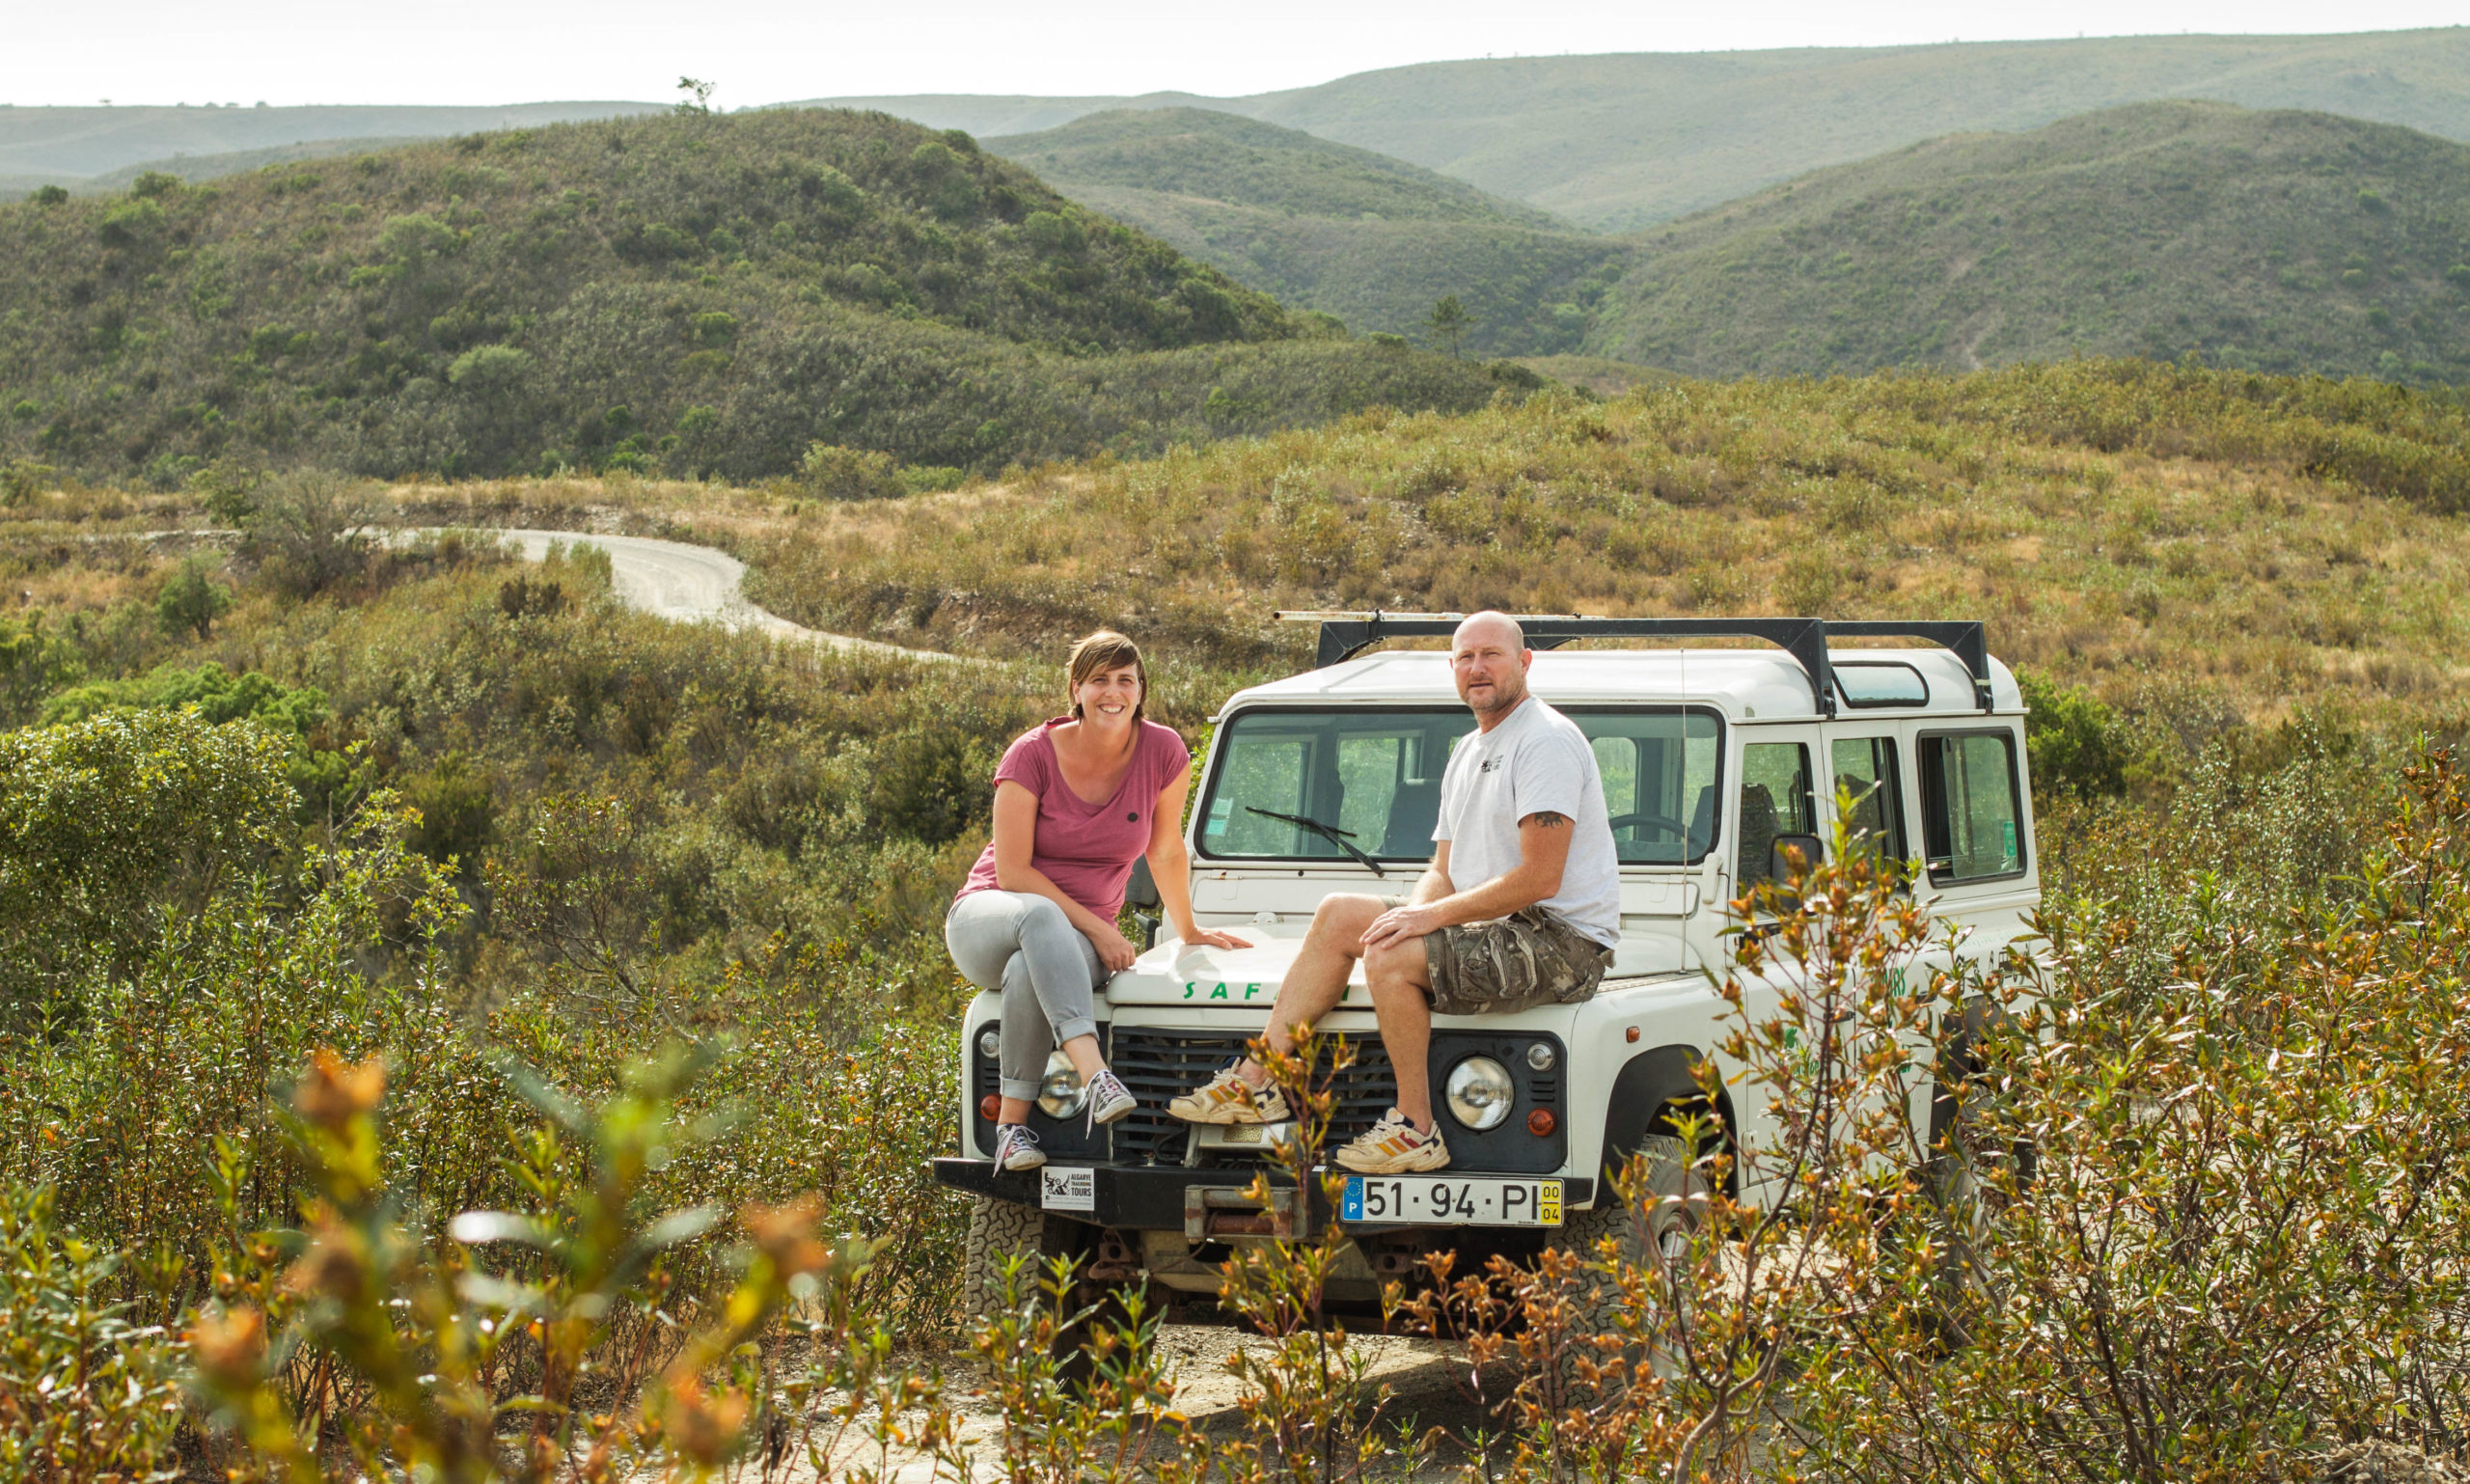 Jeep rides through scenic mountains in Algarve Portugal